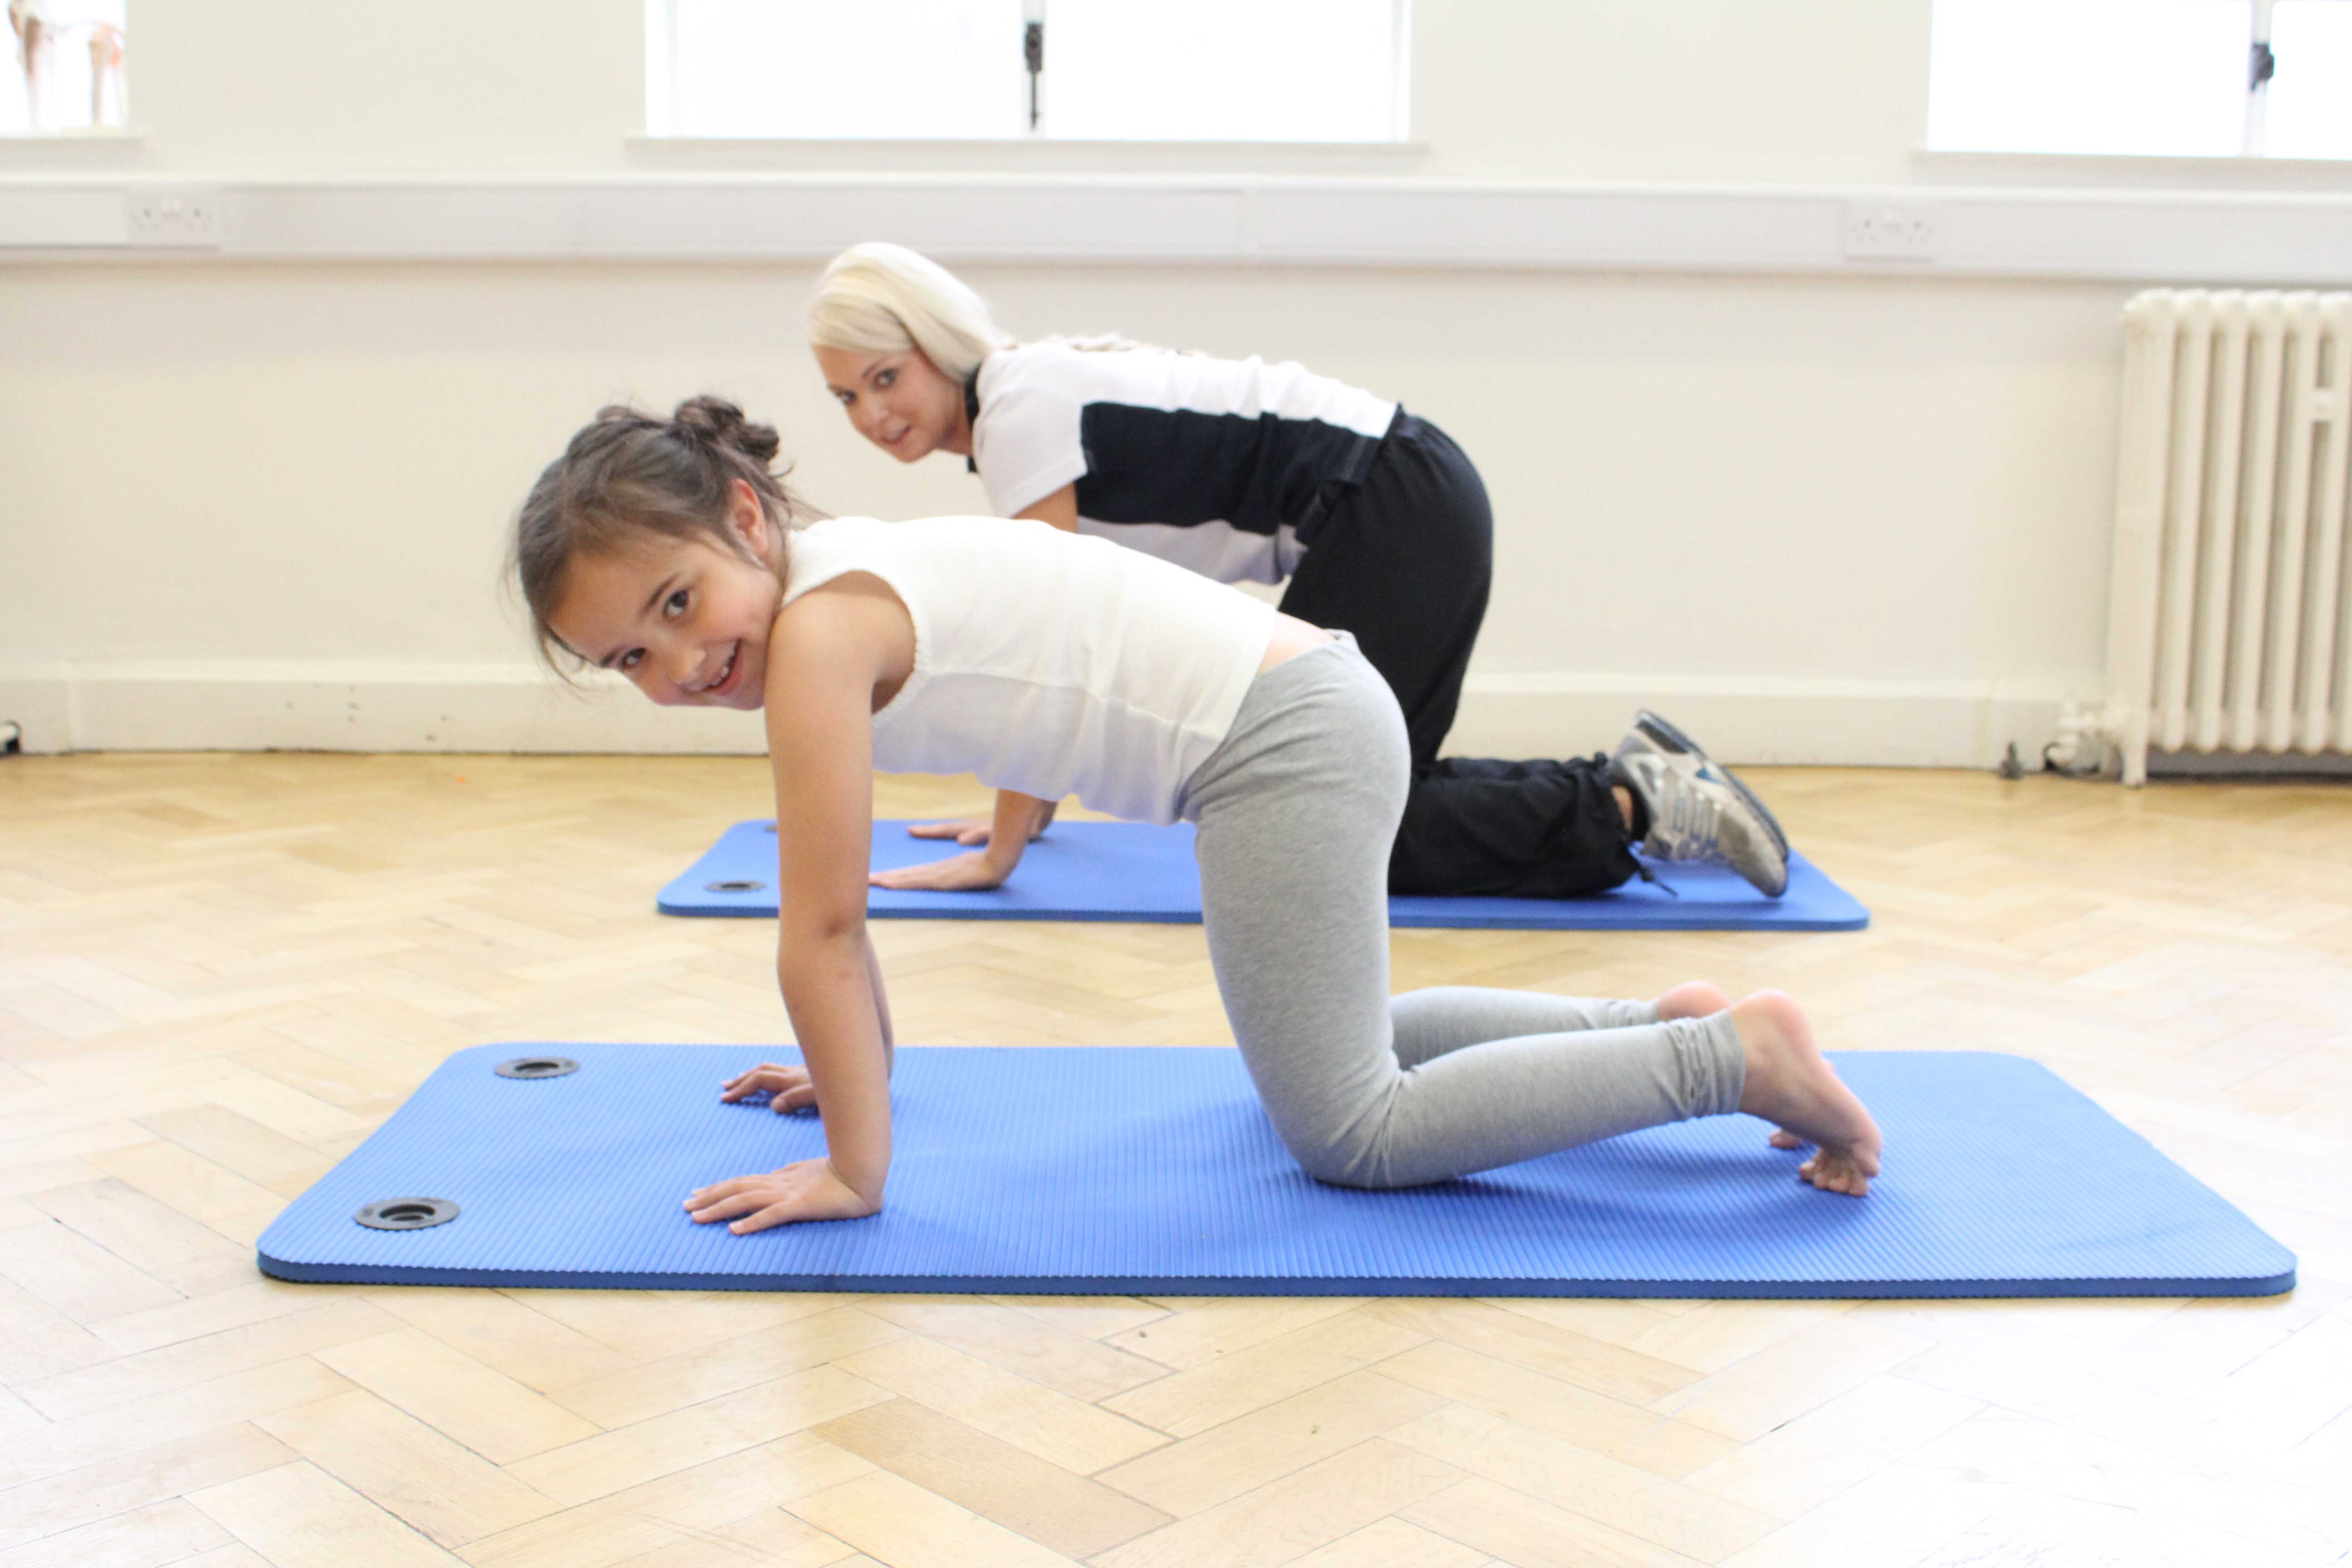 Stertches and toning exercises supervised by specilaist paediatric physiotherapist